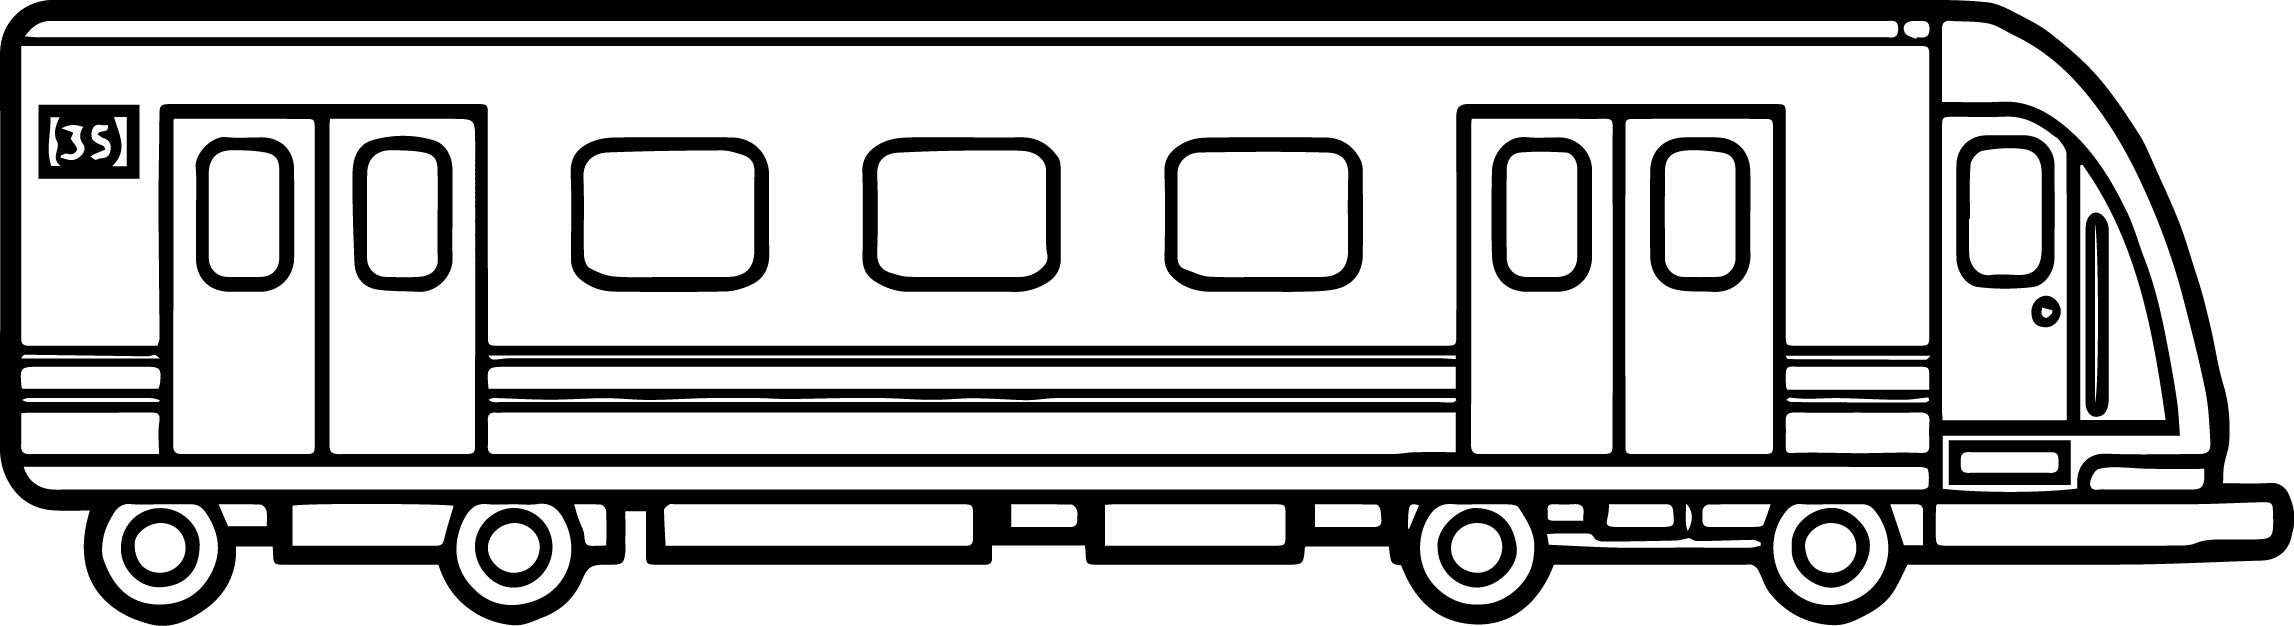 Train Locomotive Coloring Page